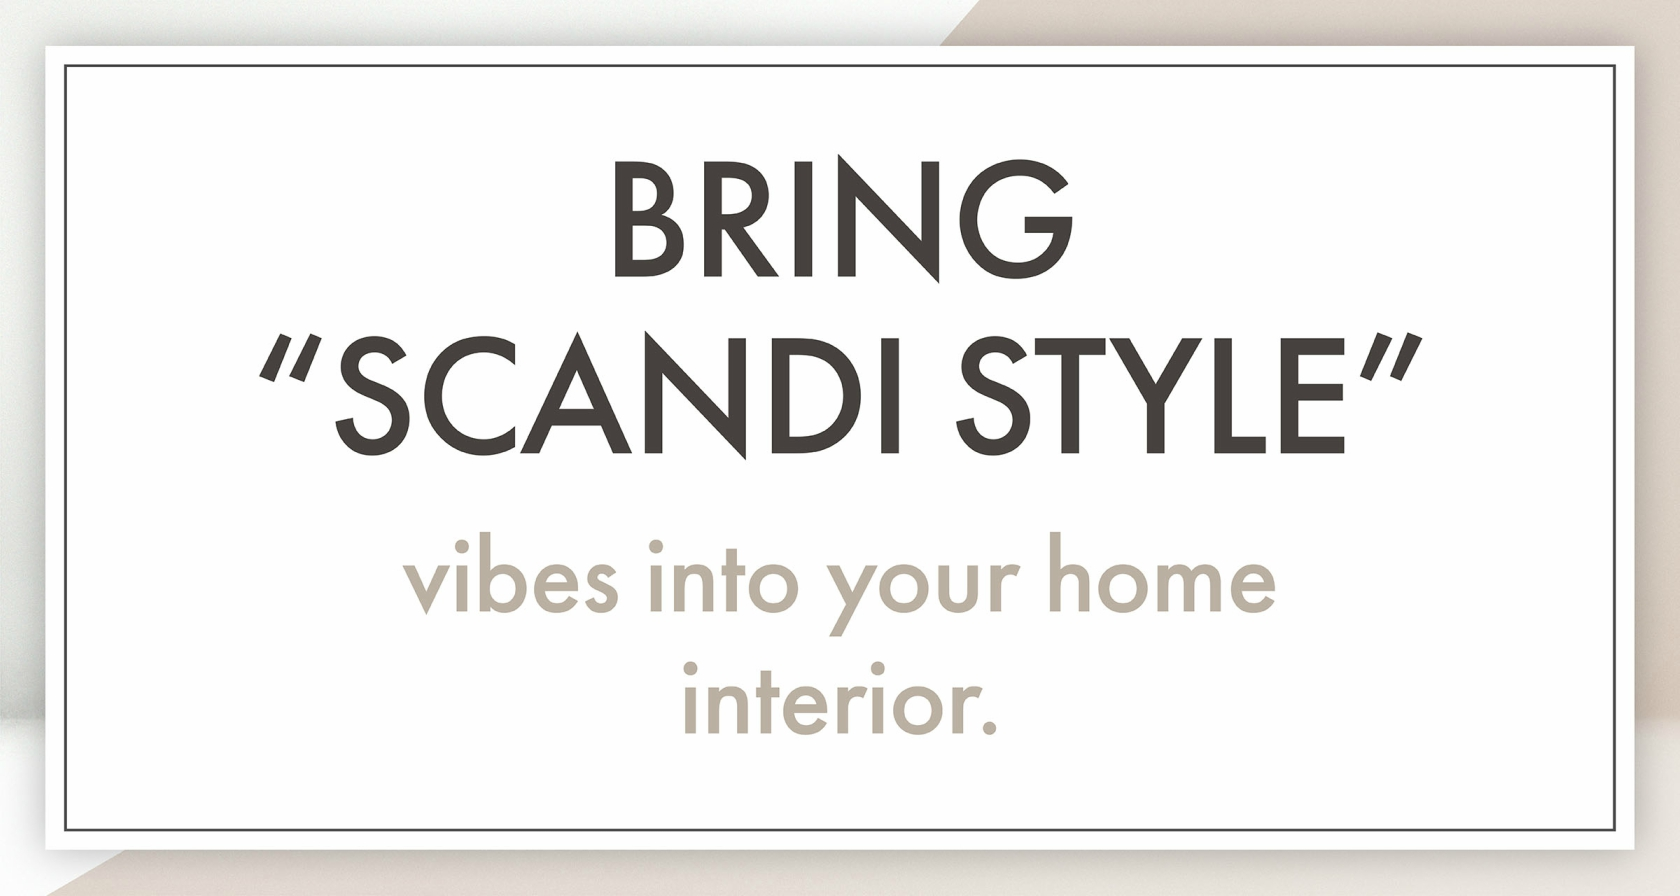 bring scandi style vibes into your home interior